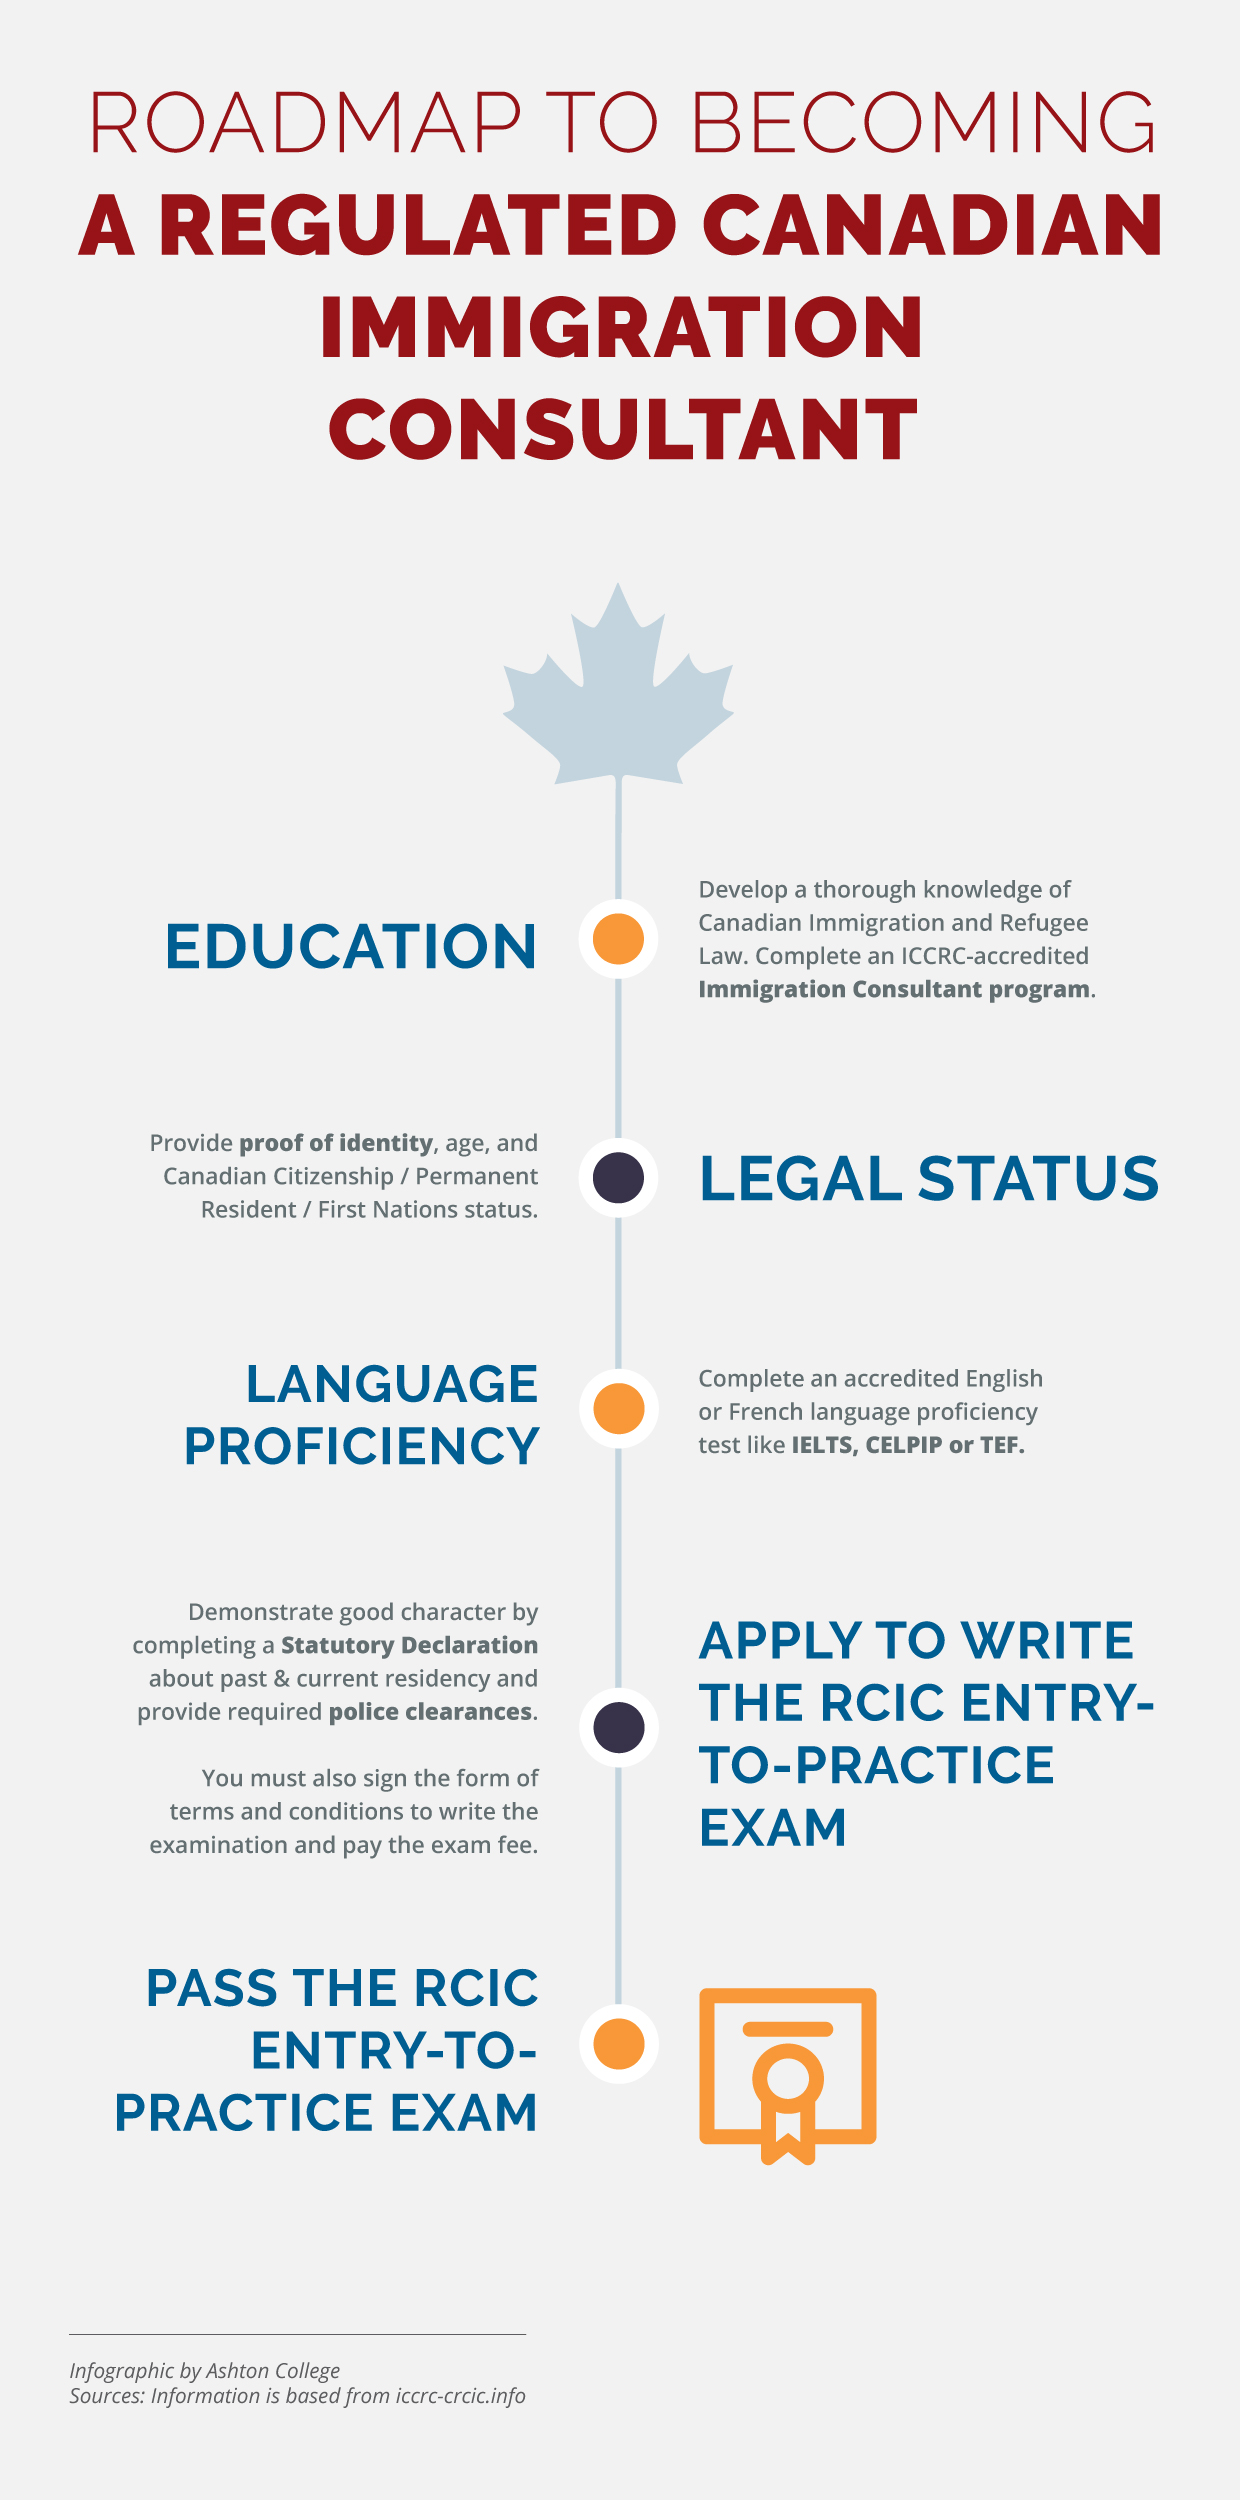 Immigration Consultant Course Online Immigration - Online College Courses Quebec